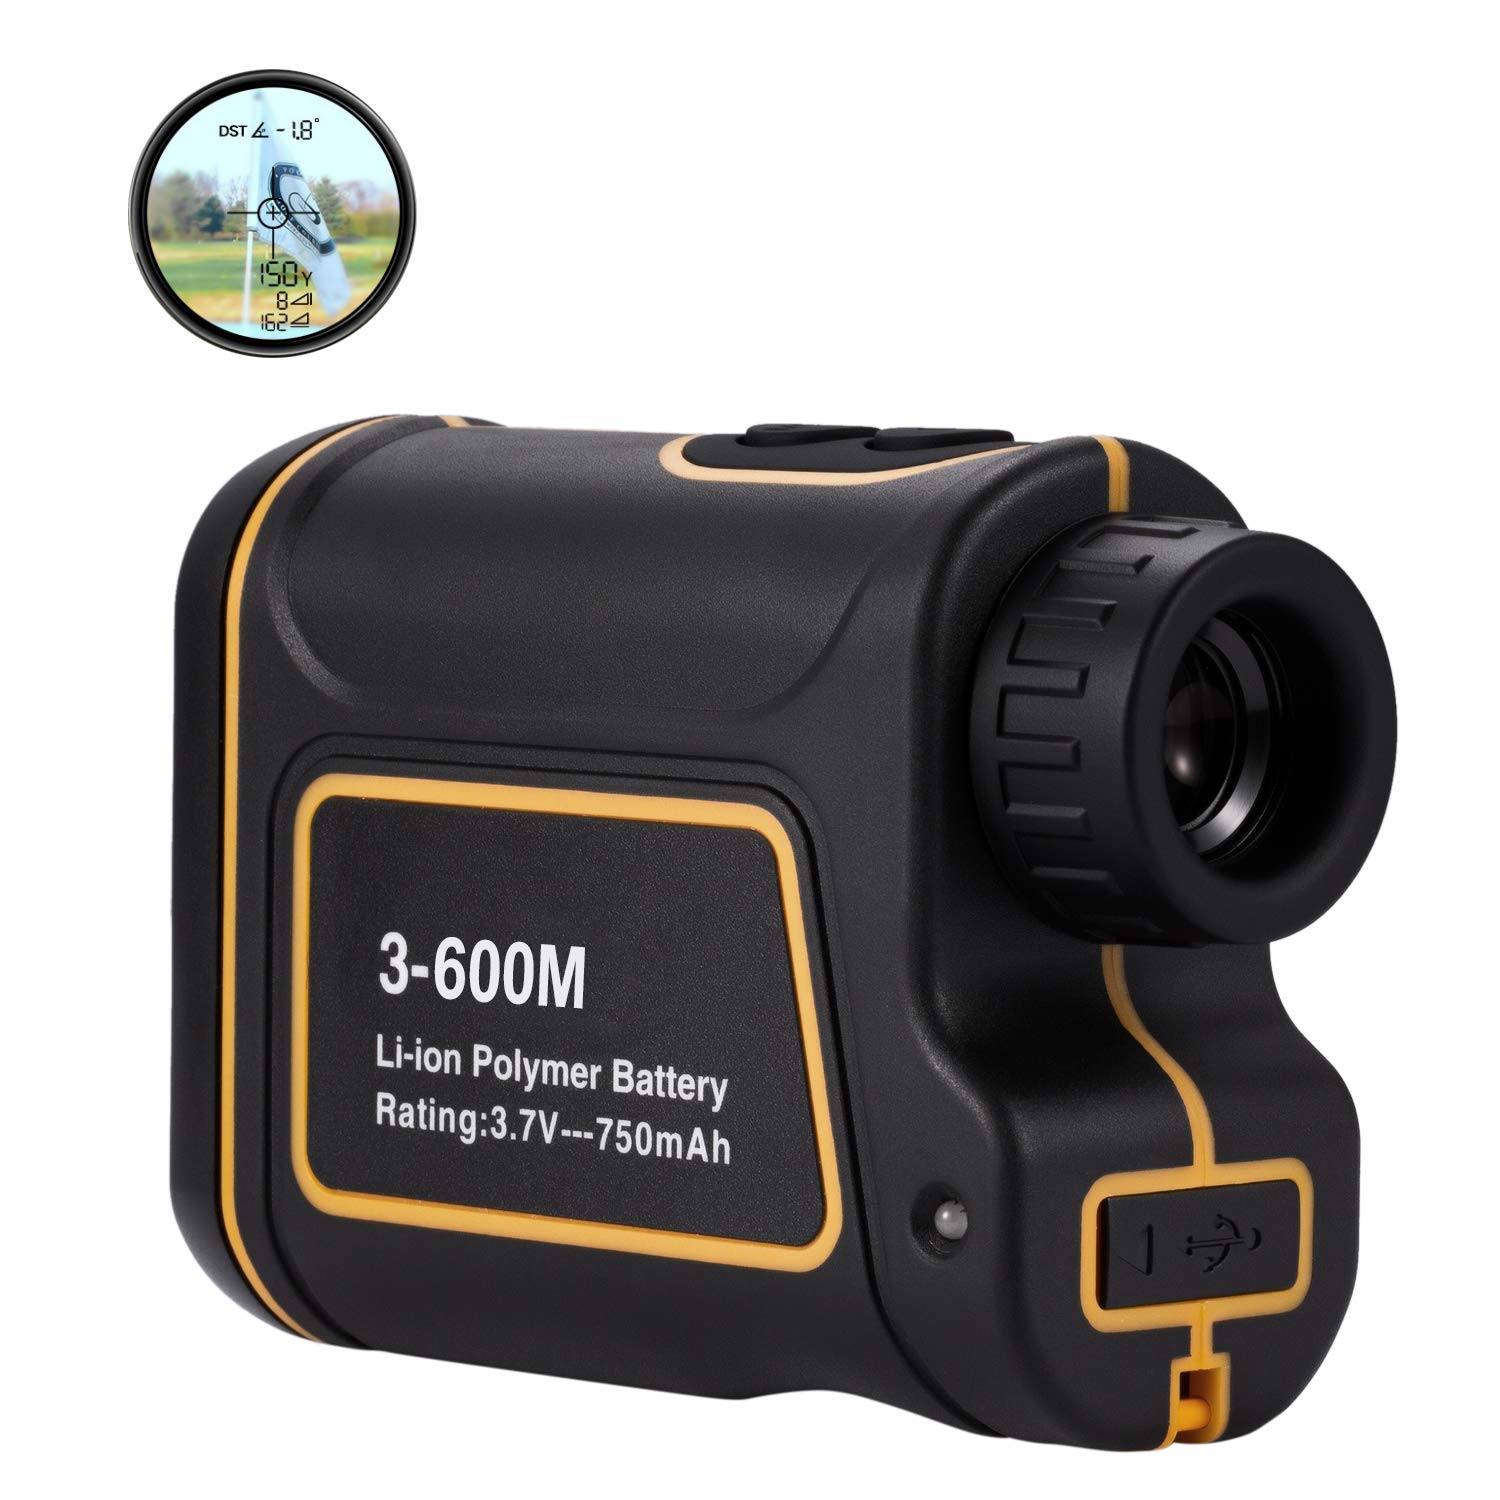 AbdTech Golf Range Finder 656Yards, USB Rechargeable Rangefinder with Flag Pole Lock Range Speed Scan Mode for Hunting Golf Course Hiking Climbing, Compact Laser Rangefinder Easy to Use for Outdoor by AbdTech